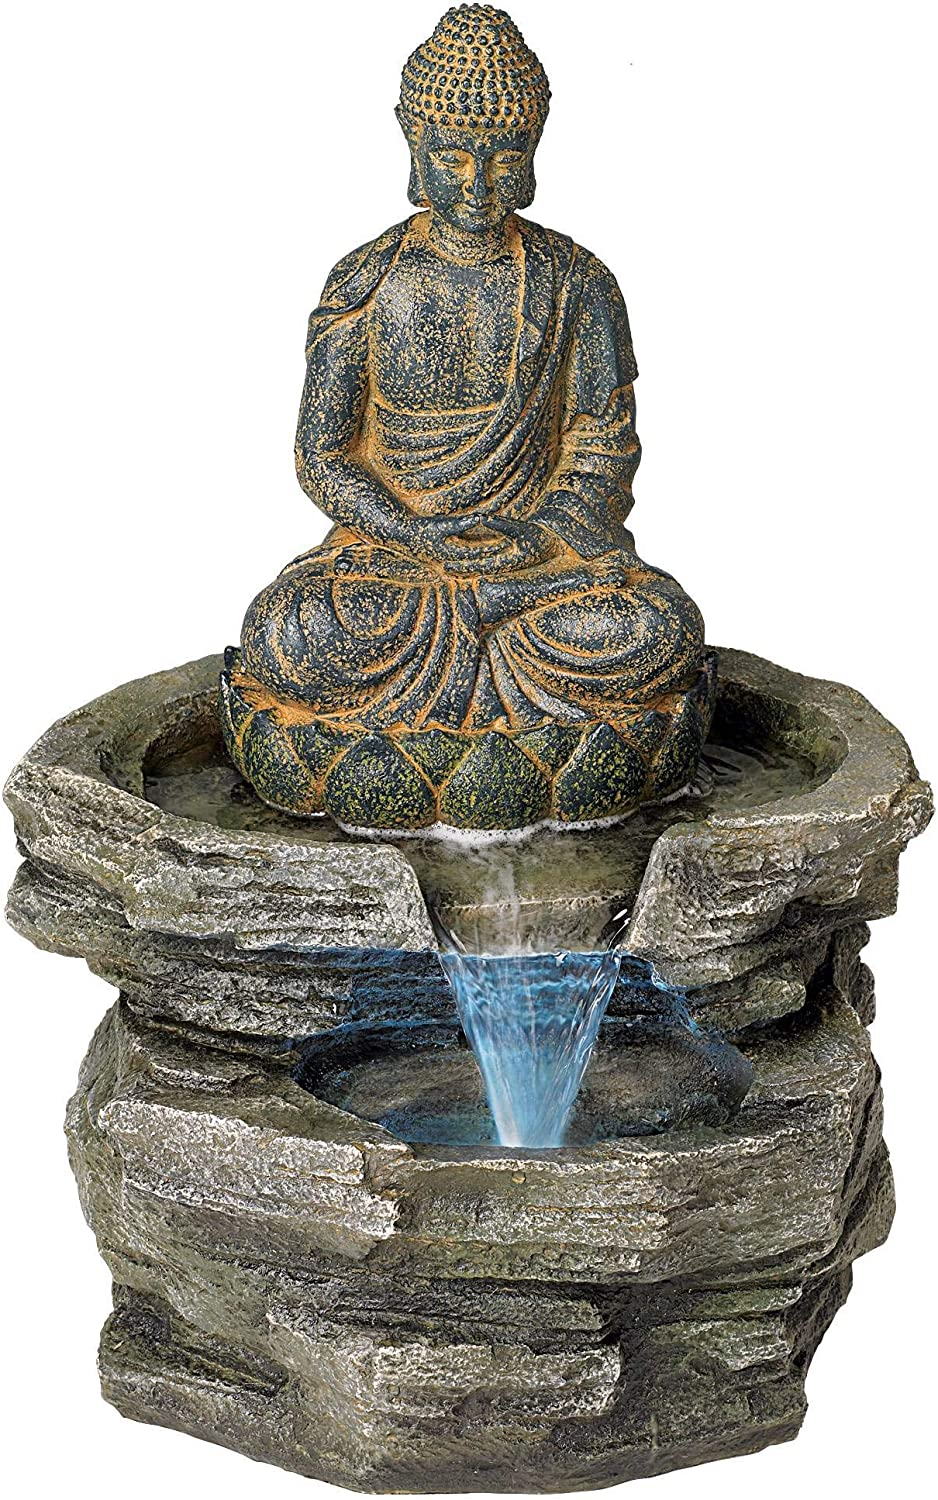 "Sitting Buddha Rustic Zen Outdoor Floor Water Fountain with Light LED 21"" High for Yard Garden Patio Deck Home Relaxation - John Timberland"